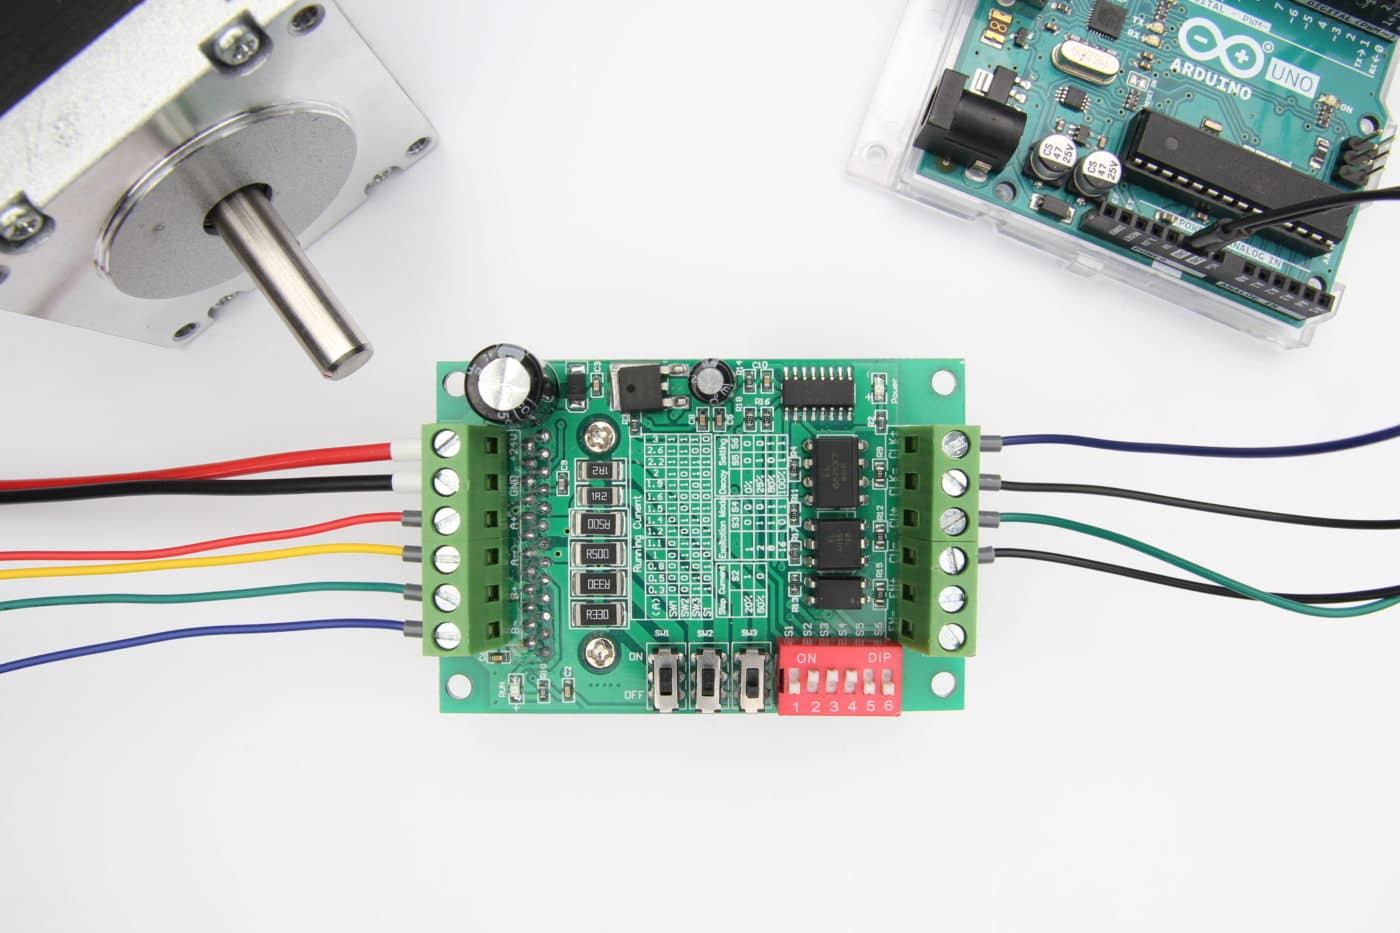 Tb6560 Stepper Motor Driver With Arduino Tutorial 2 Examples